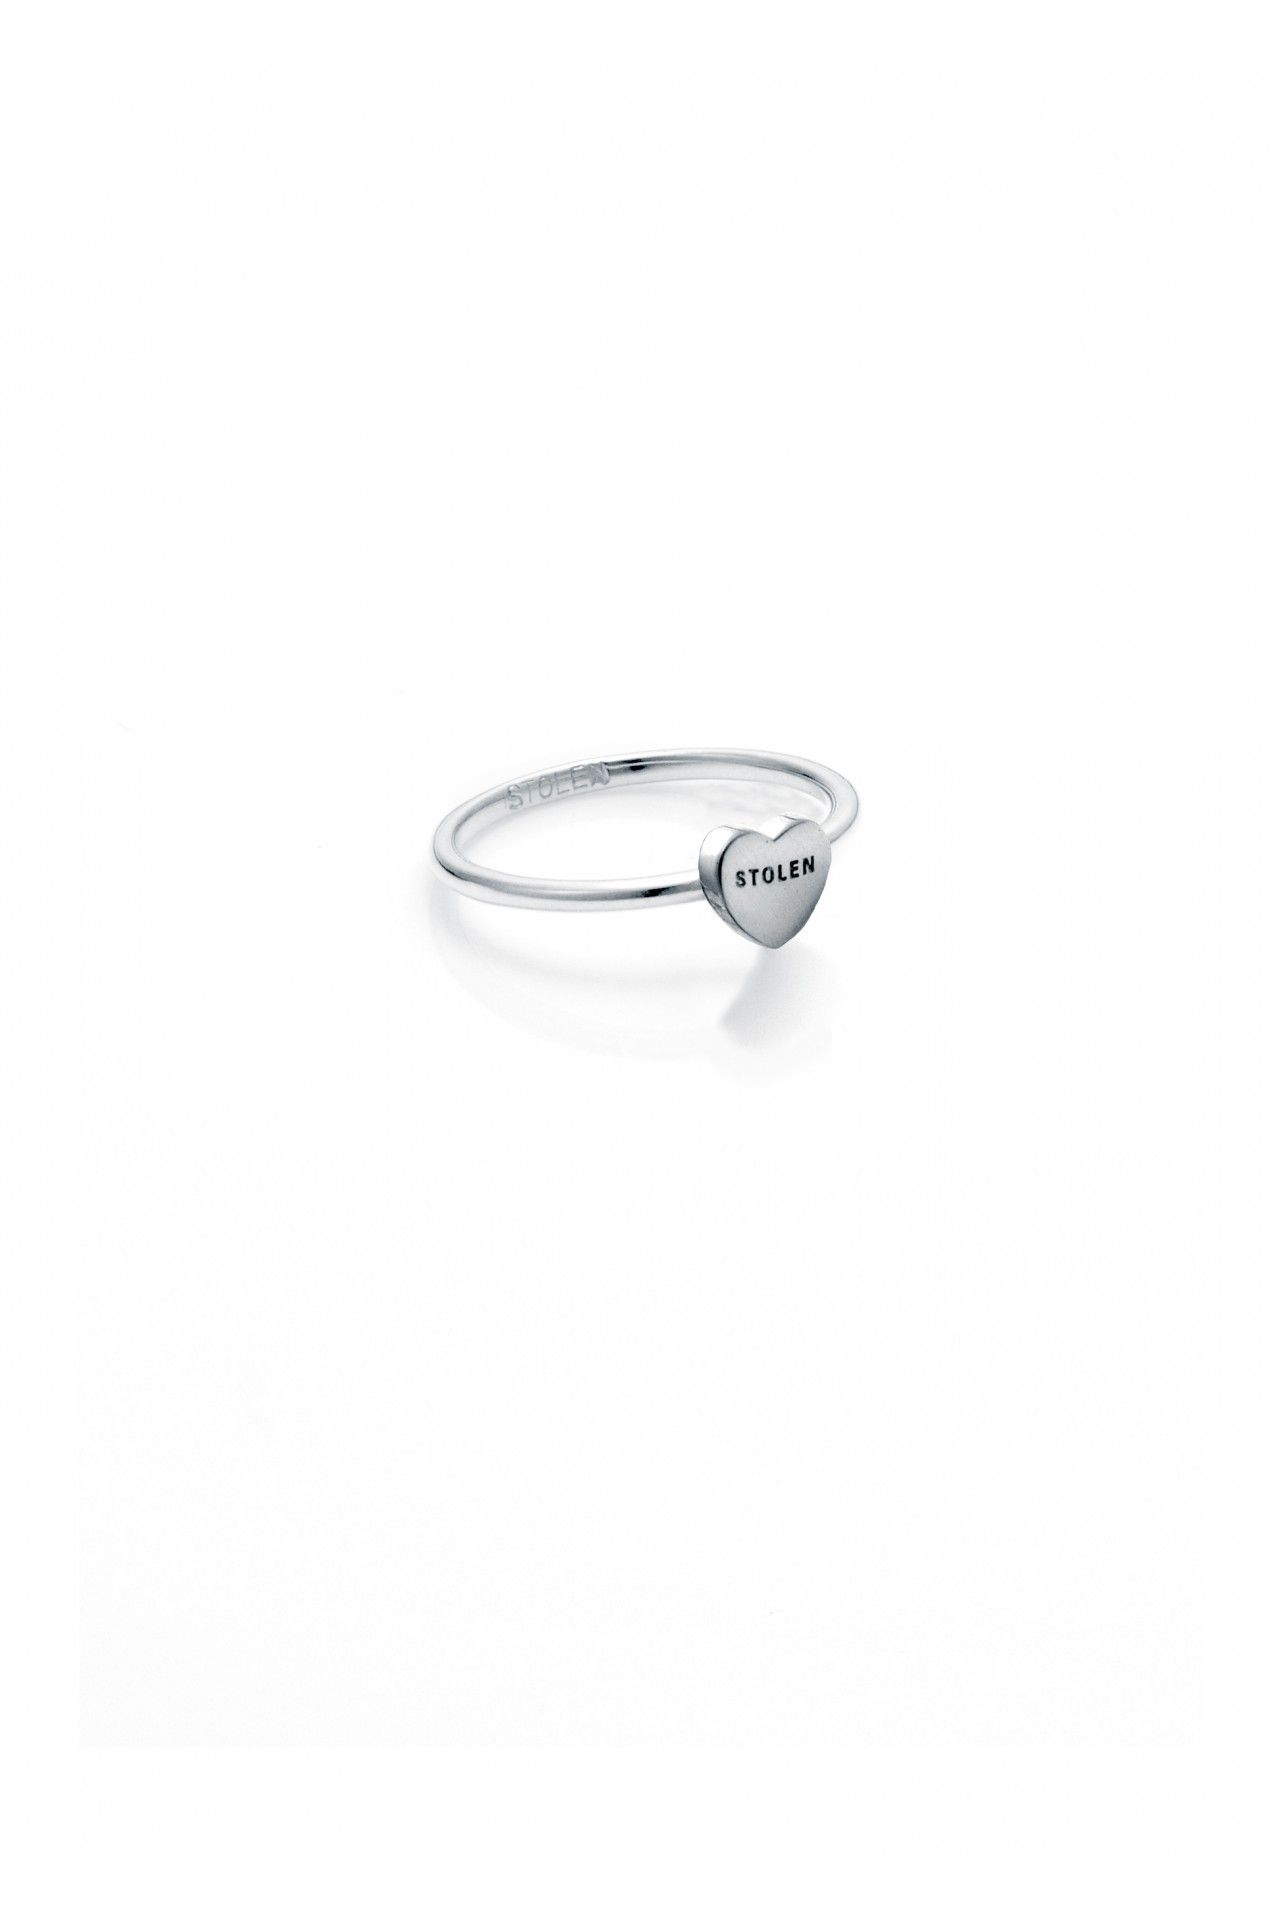 Baby Stolen Heart Ring View All Jewellery